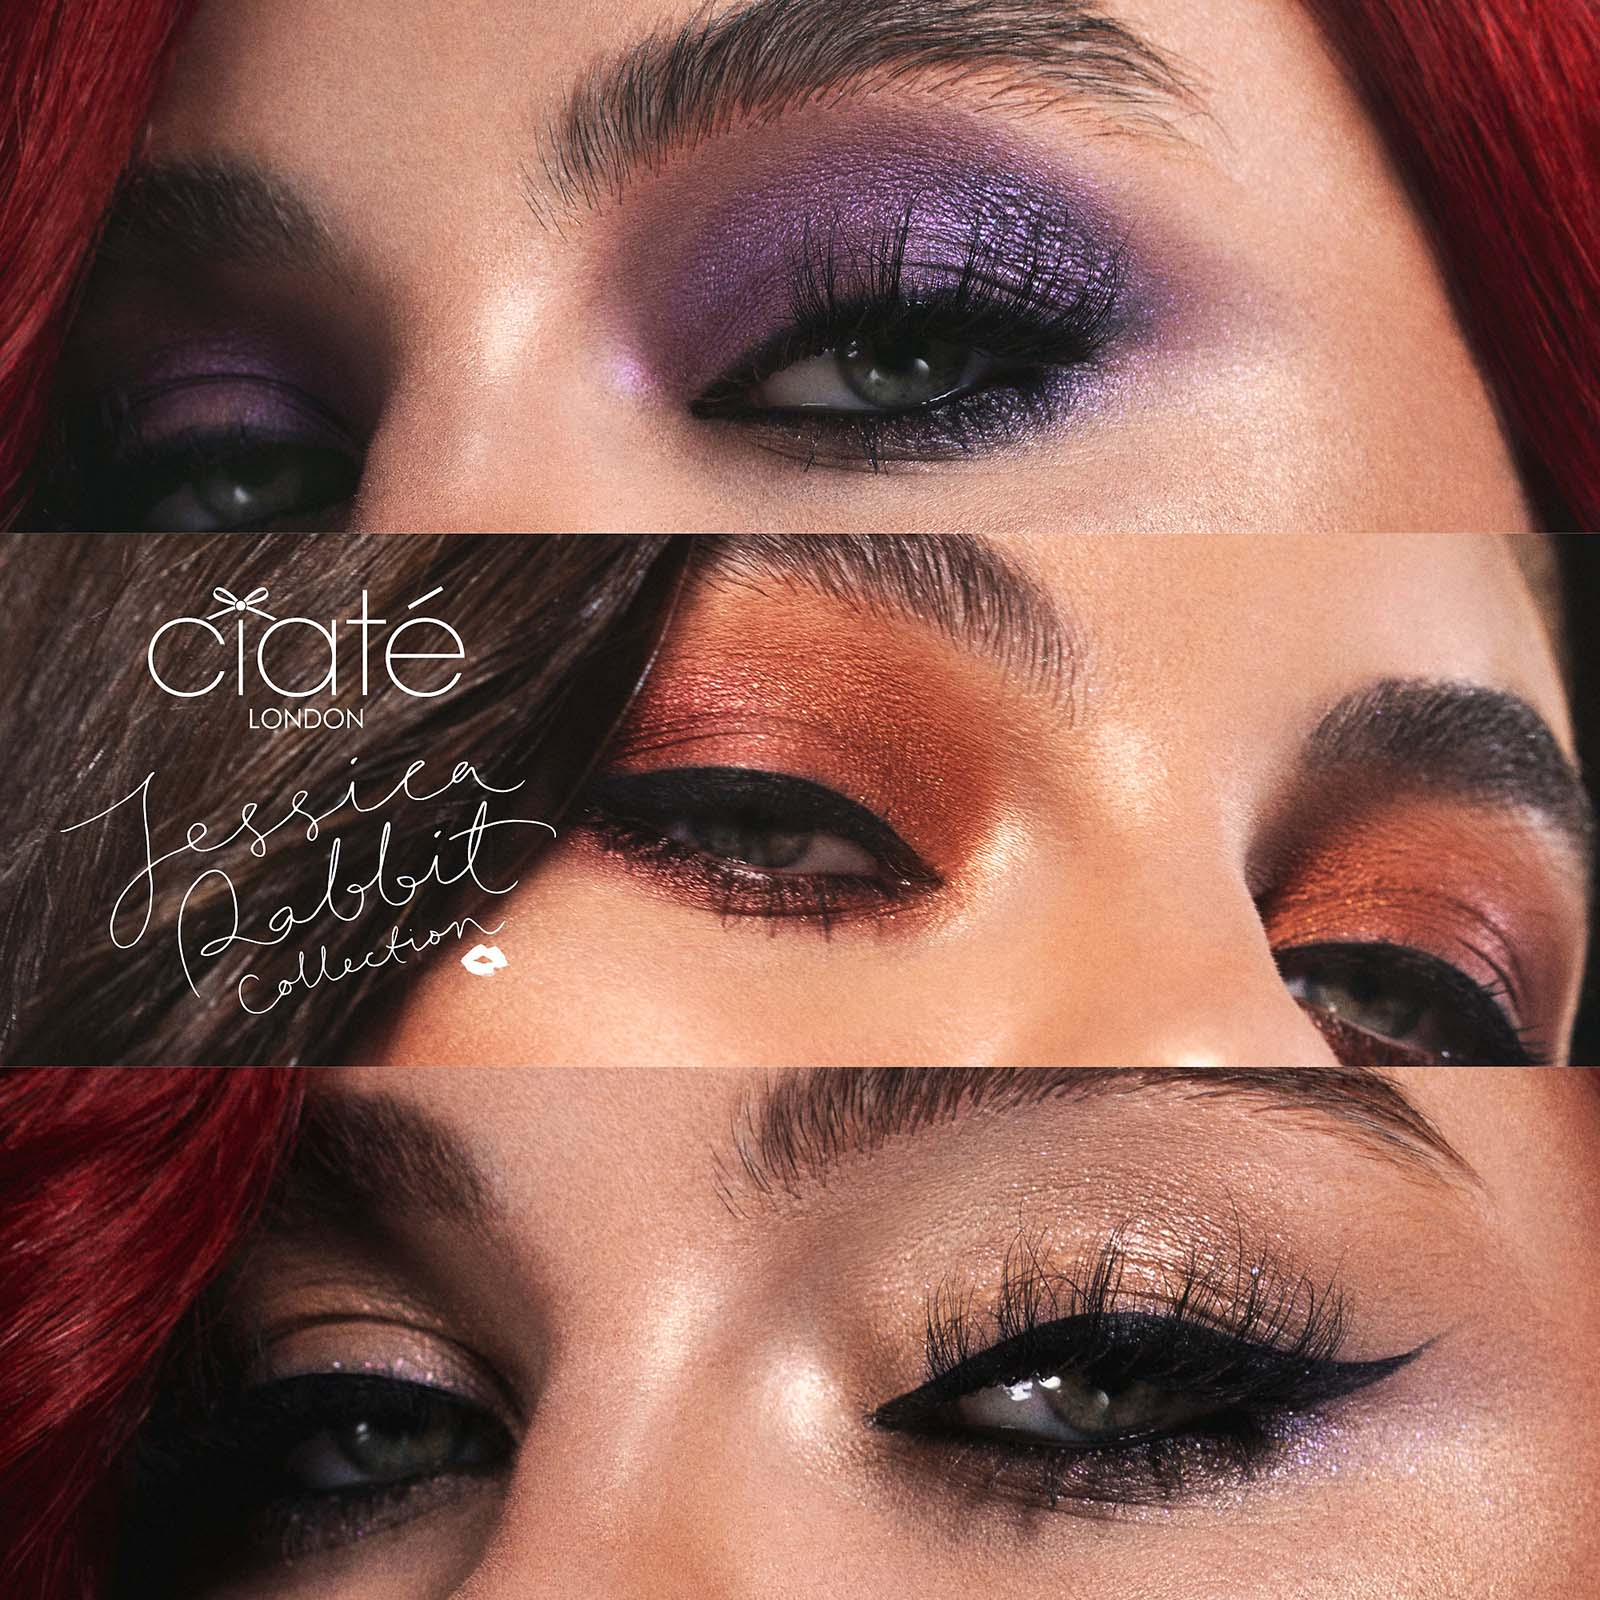 Ciate Makeup: Ciate Jessica Rabbit Makeup Collection